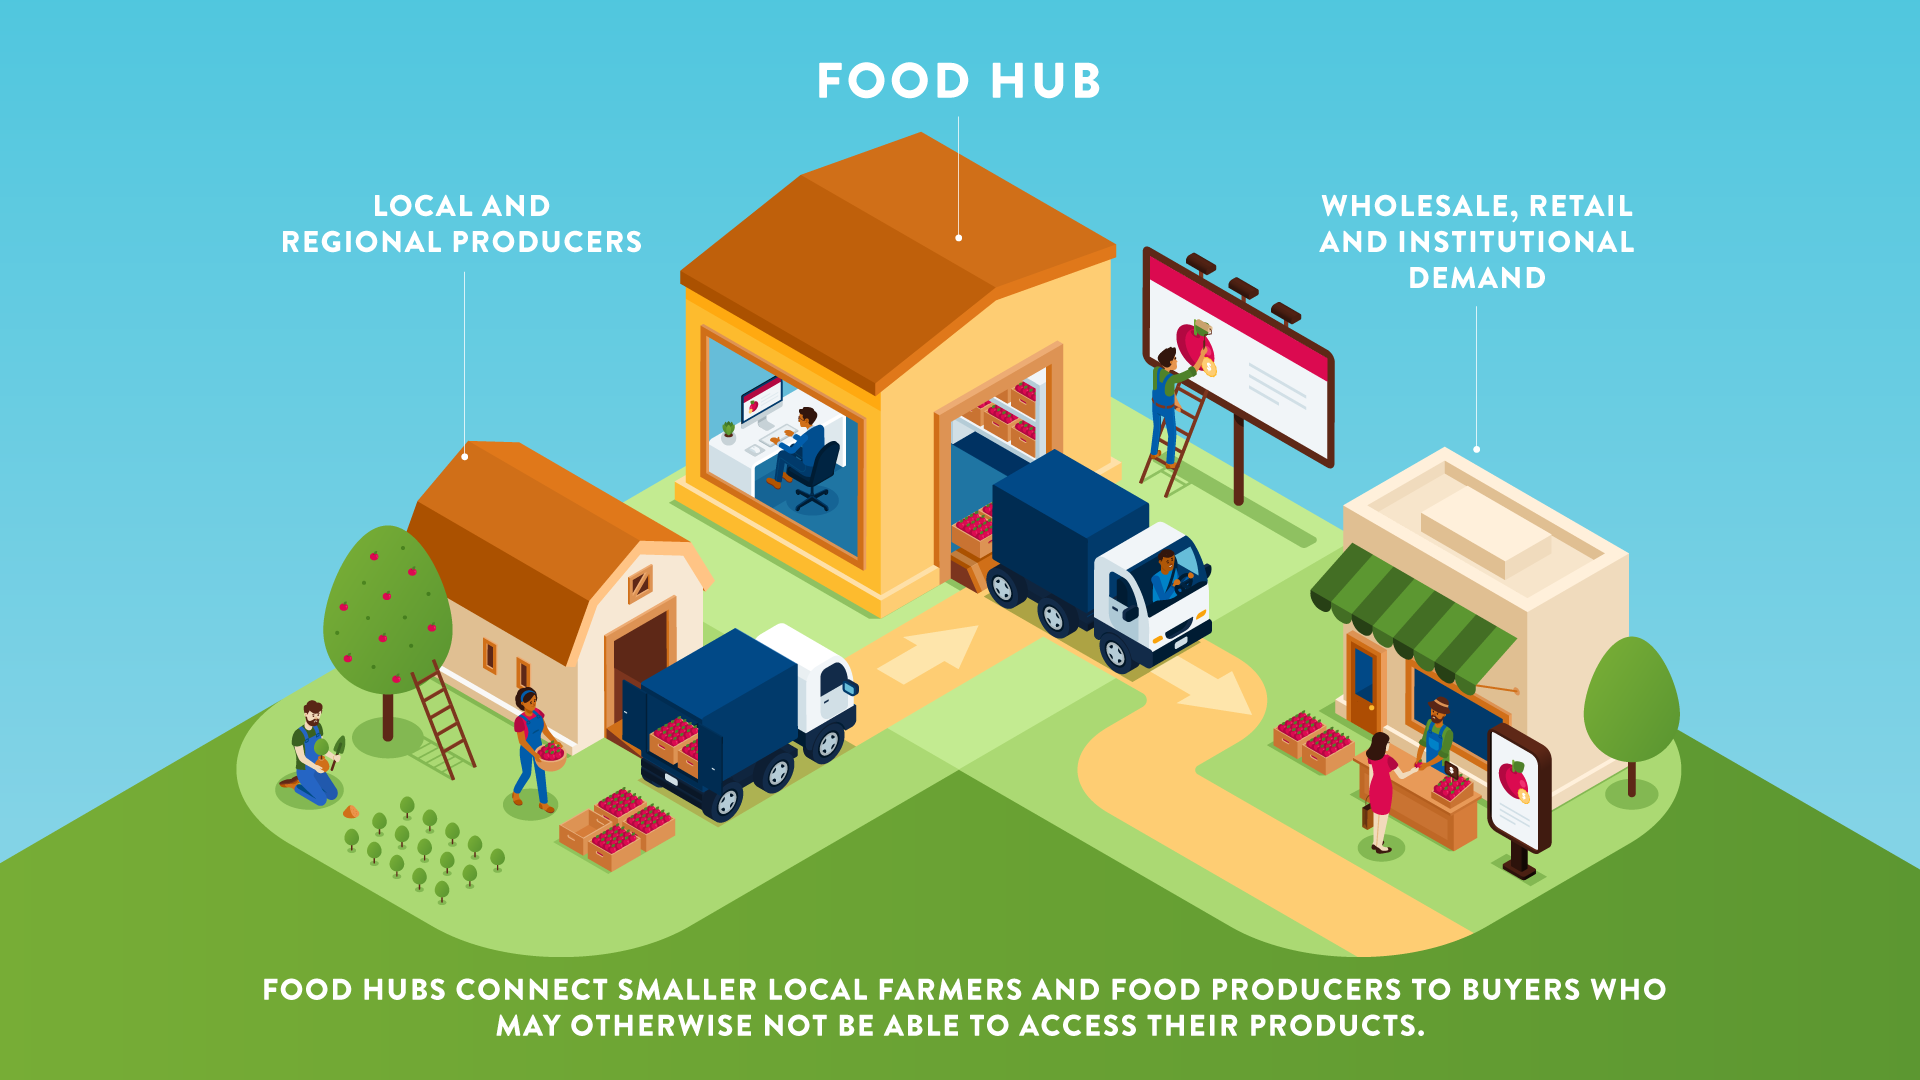 An illustration of a food hub with farmers and a marketplace.